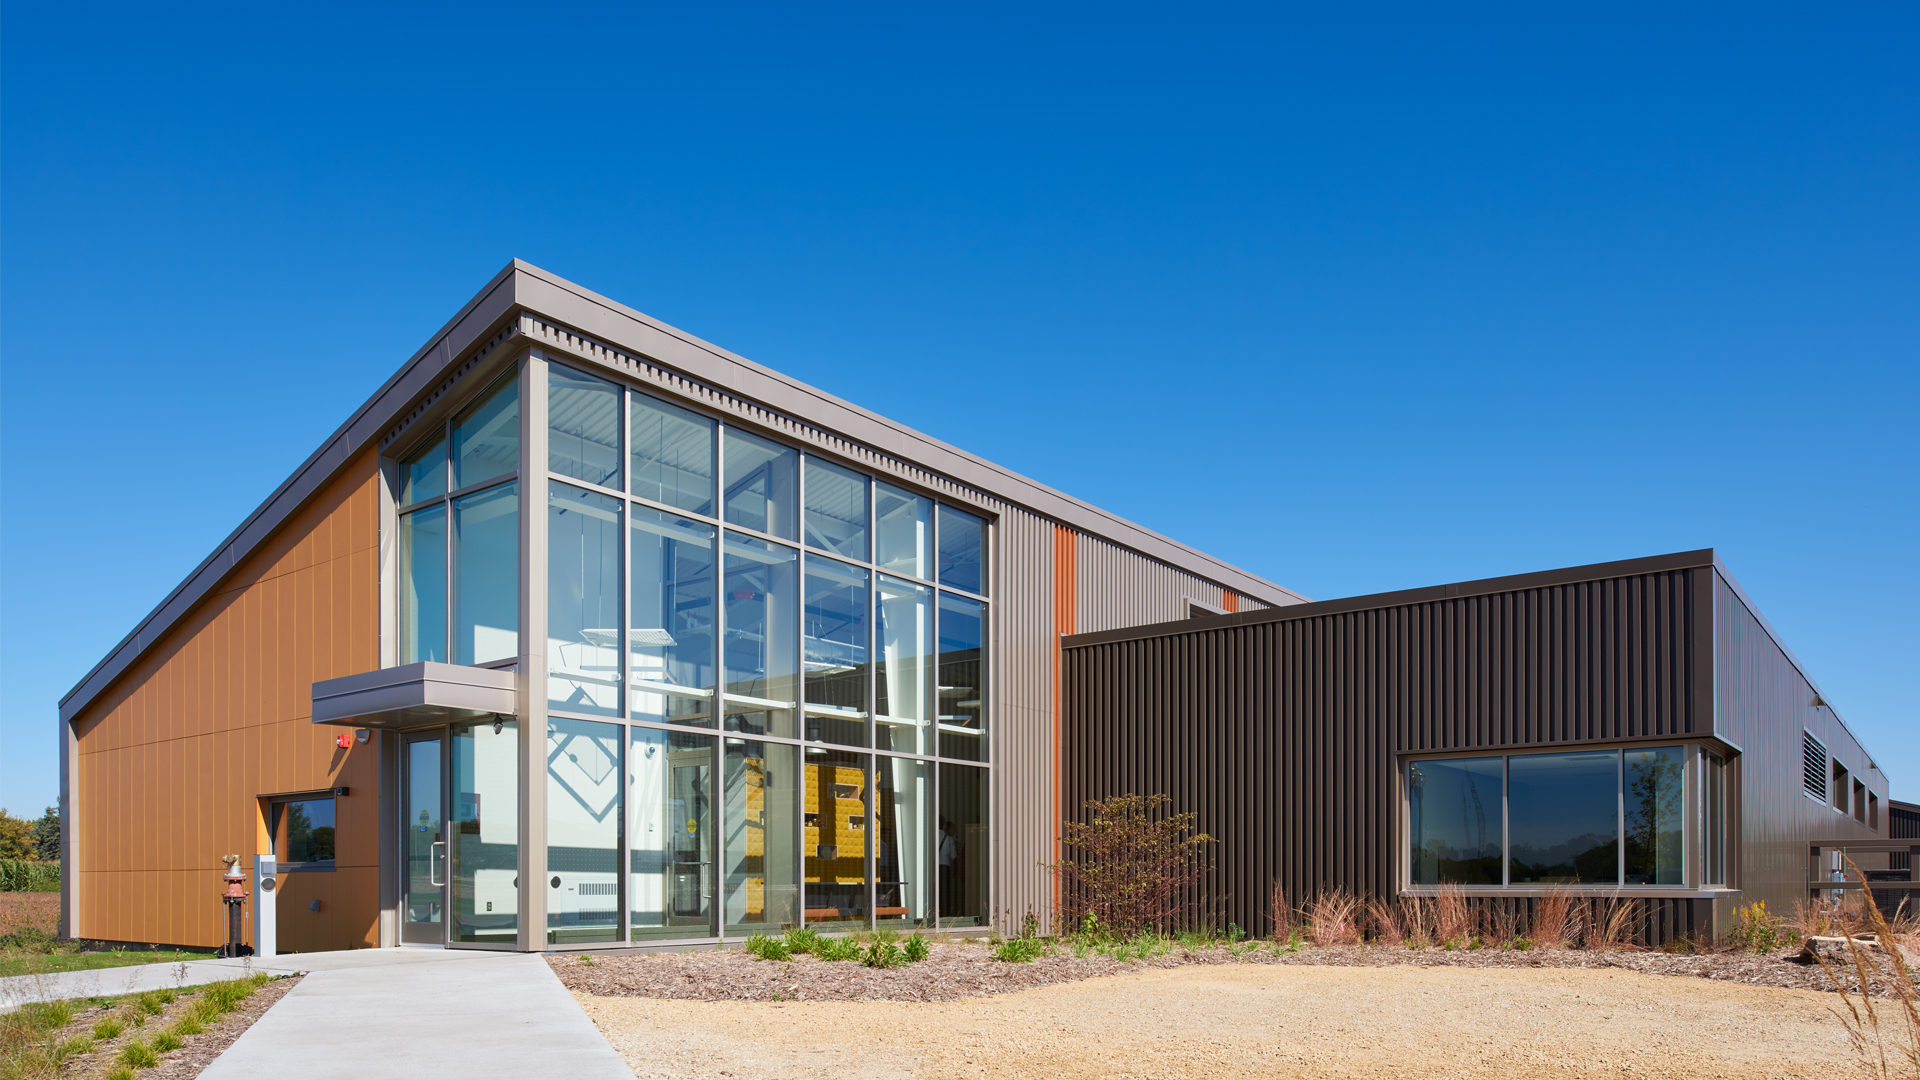 U of M Bee Research Facility St Paul MN College University Exterior Entrance View